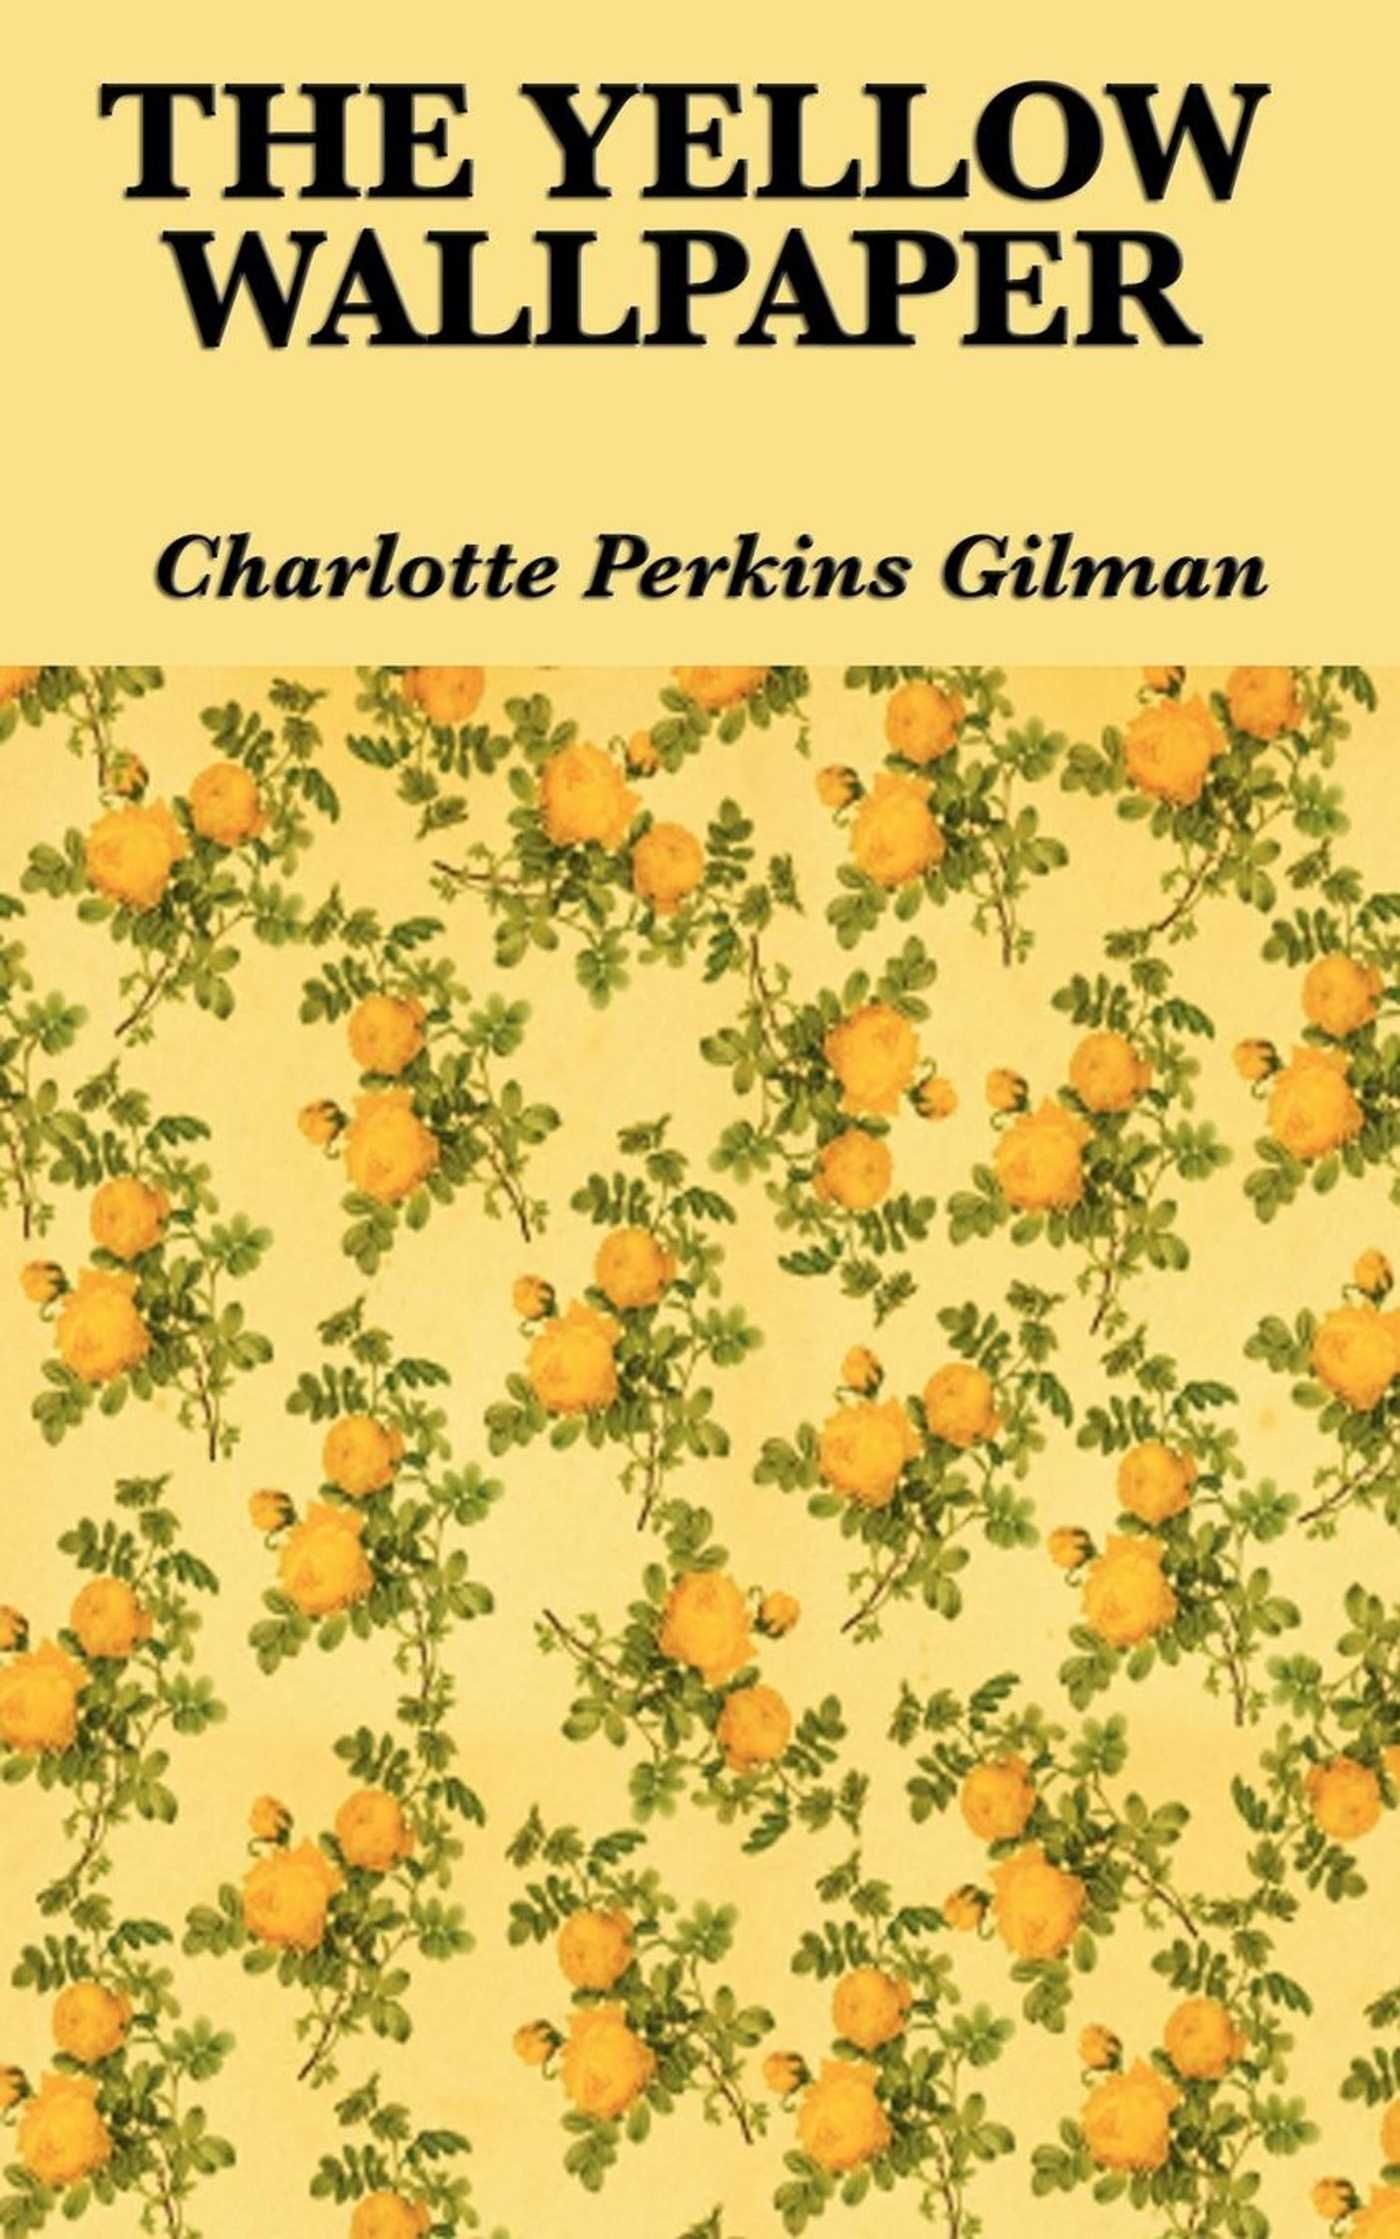 The Yellow Wallpaper By Charlotte Perkins Gilman Yellow Wallpaper Best Book Covers Feminist Literature